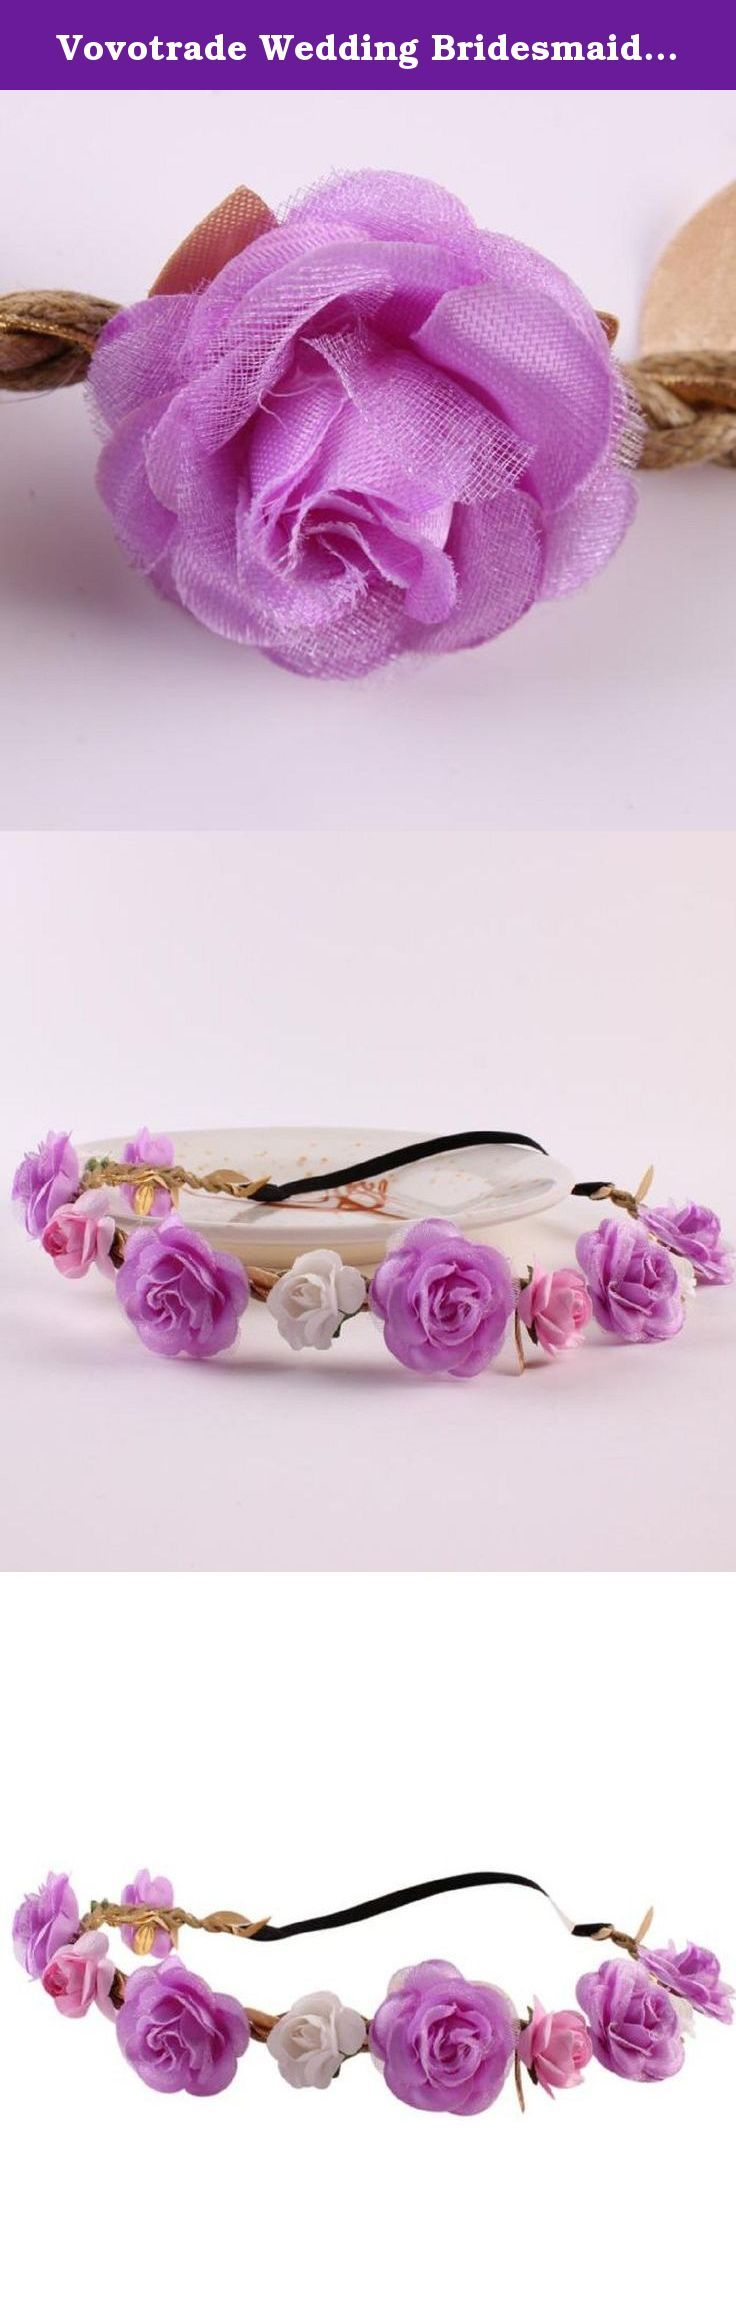 Vovotrade Wedding Bridesmaid Floral Flower Festival Forehead Headband Hair Garland (Purple). Description Quantity:1PC As different computers display colors differently, the color of the actual item may vary slightly from the images. Package 1PC Women Headdress.